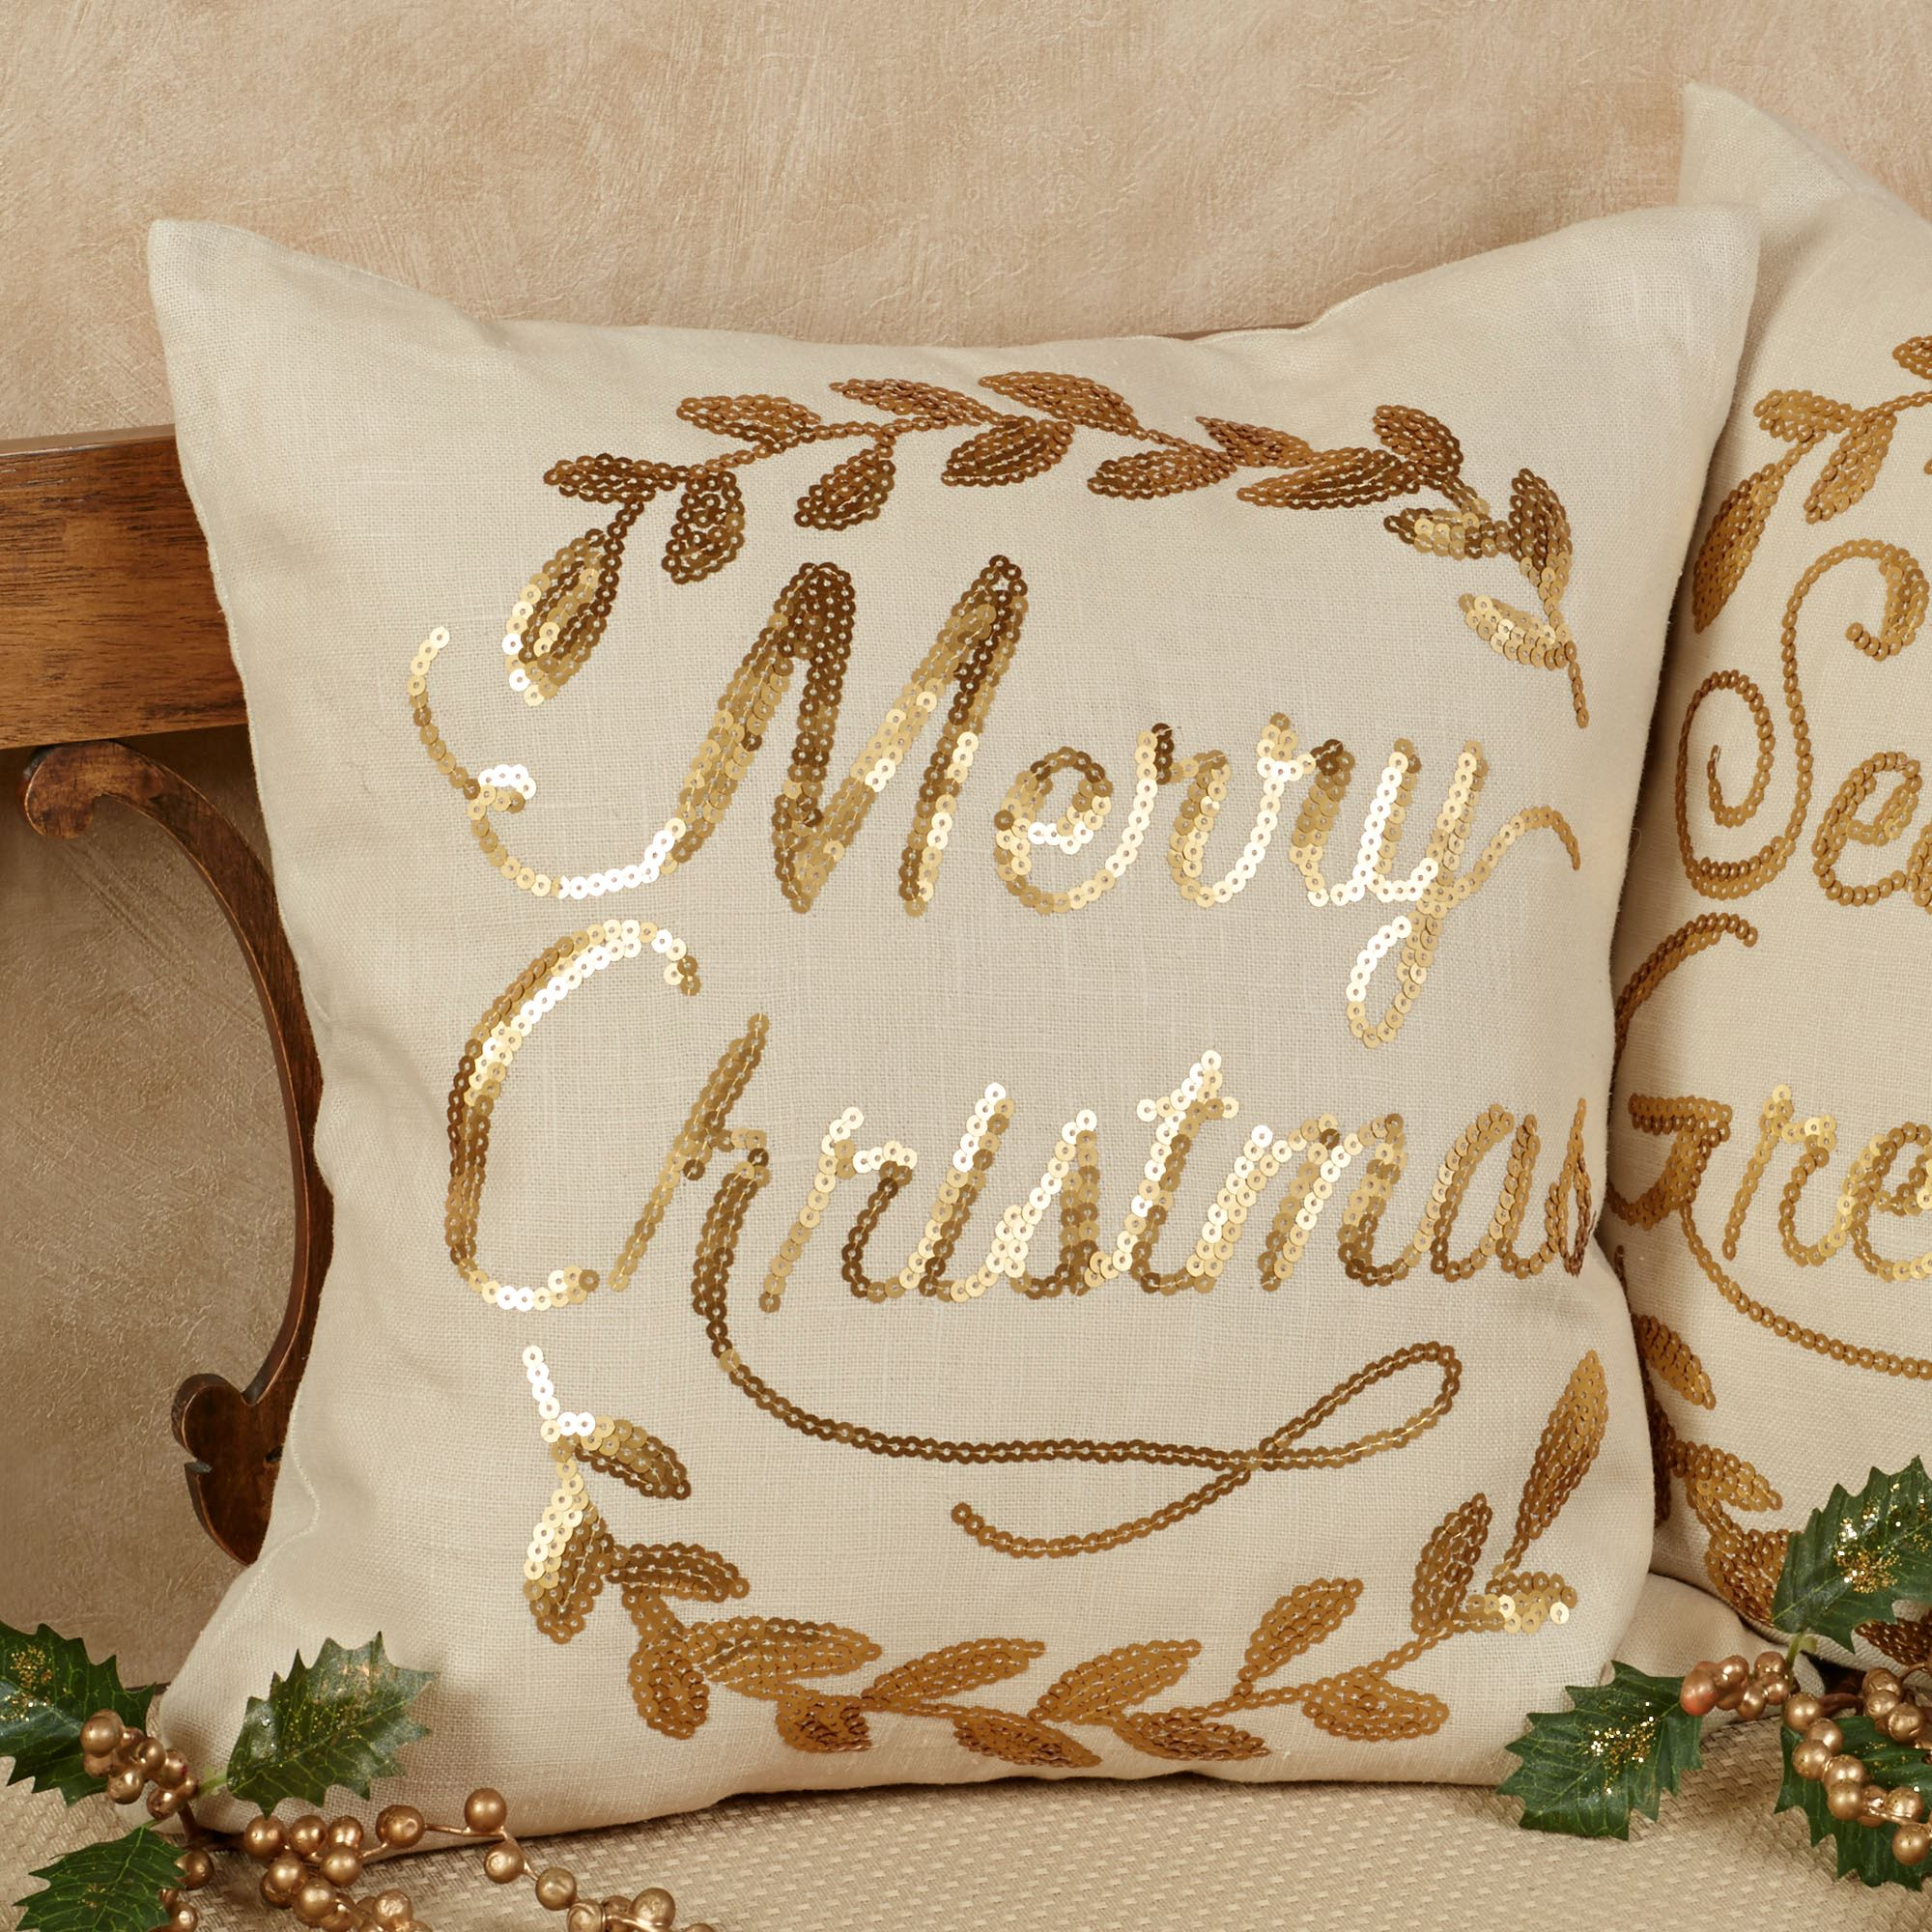 merry christmas wreath accent pillow light cream 16 - Christmas Decorative Pillows